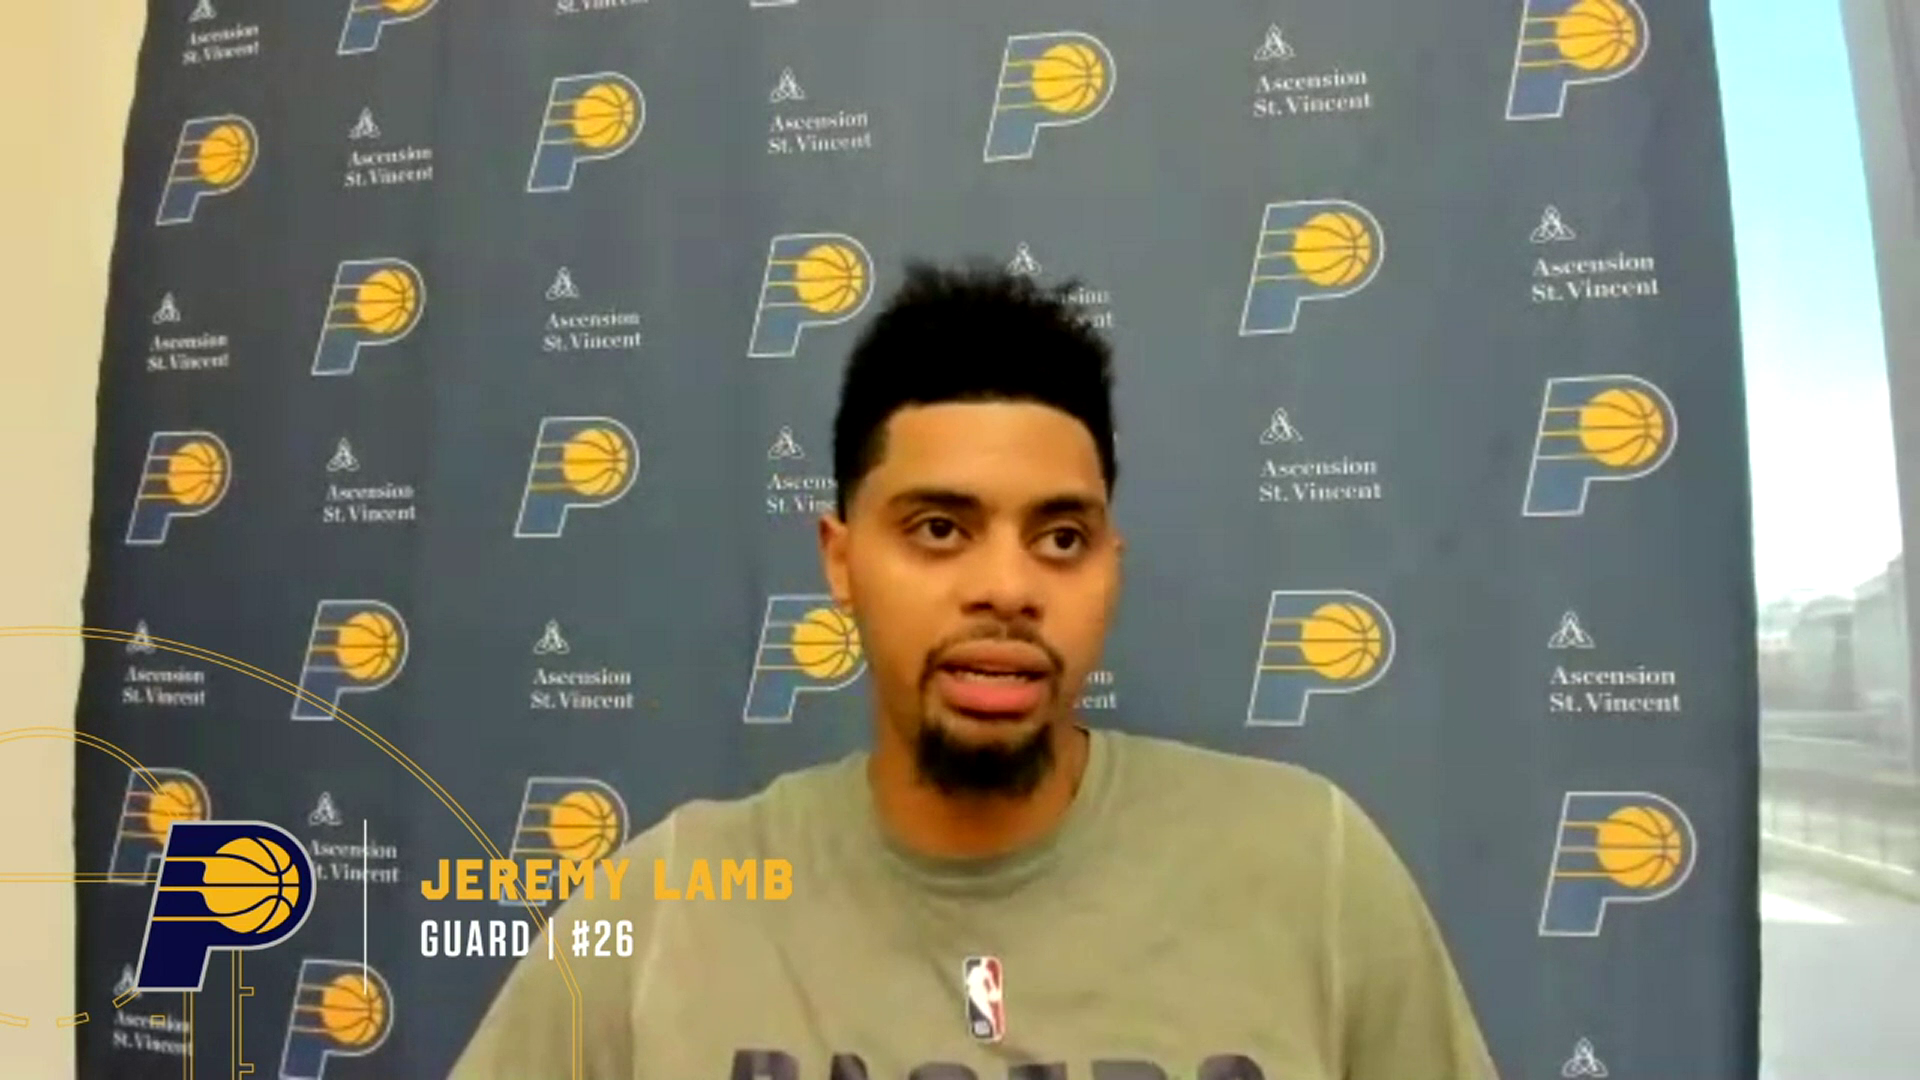 Jeremy Lamb on Rehab, Changes to Diet